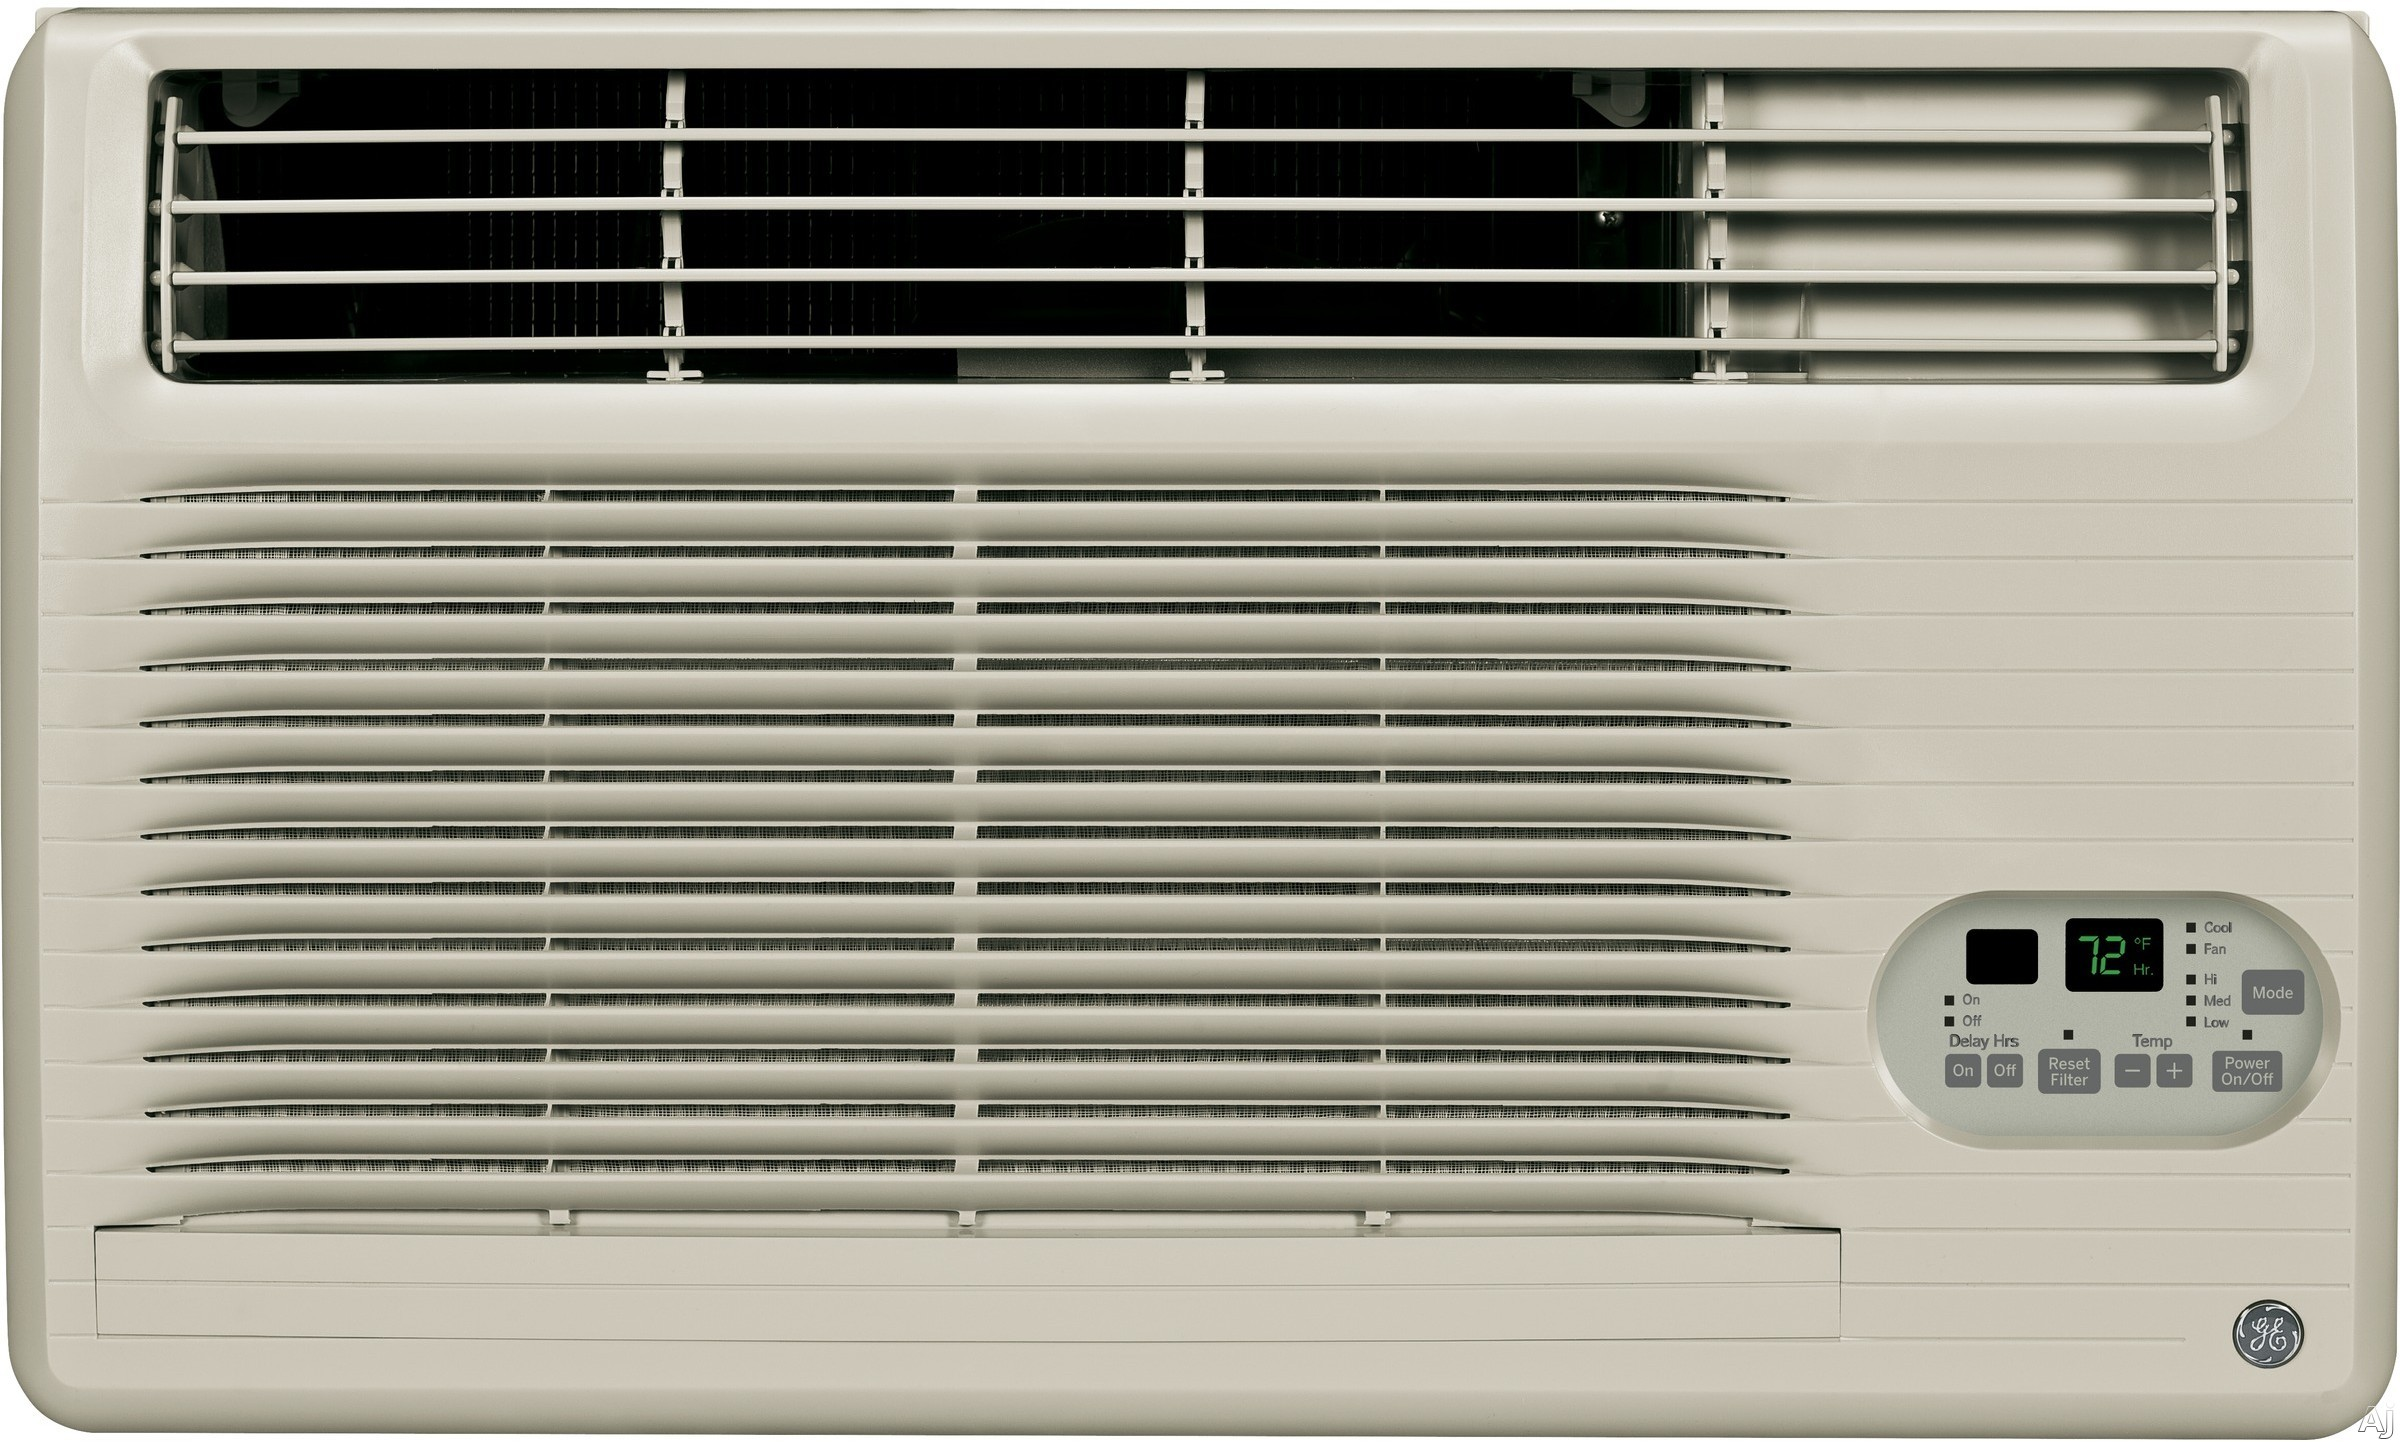 GE AJCM12DCG 12 000 BTU Thru the Wall Air Conditioner with 10.6 EER R 410A Refrigerant 3.4 Pts Hr Dehumidification Electronic Controls ADA Compliant ENERGY STAR and Remote Control